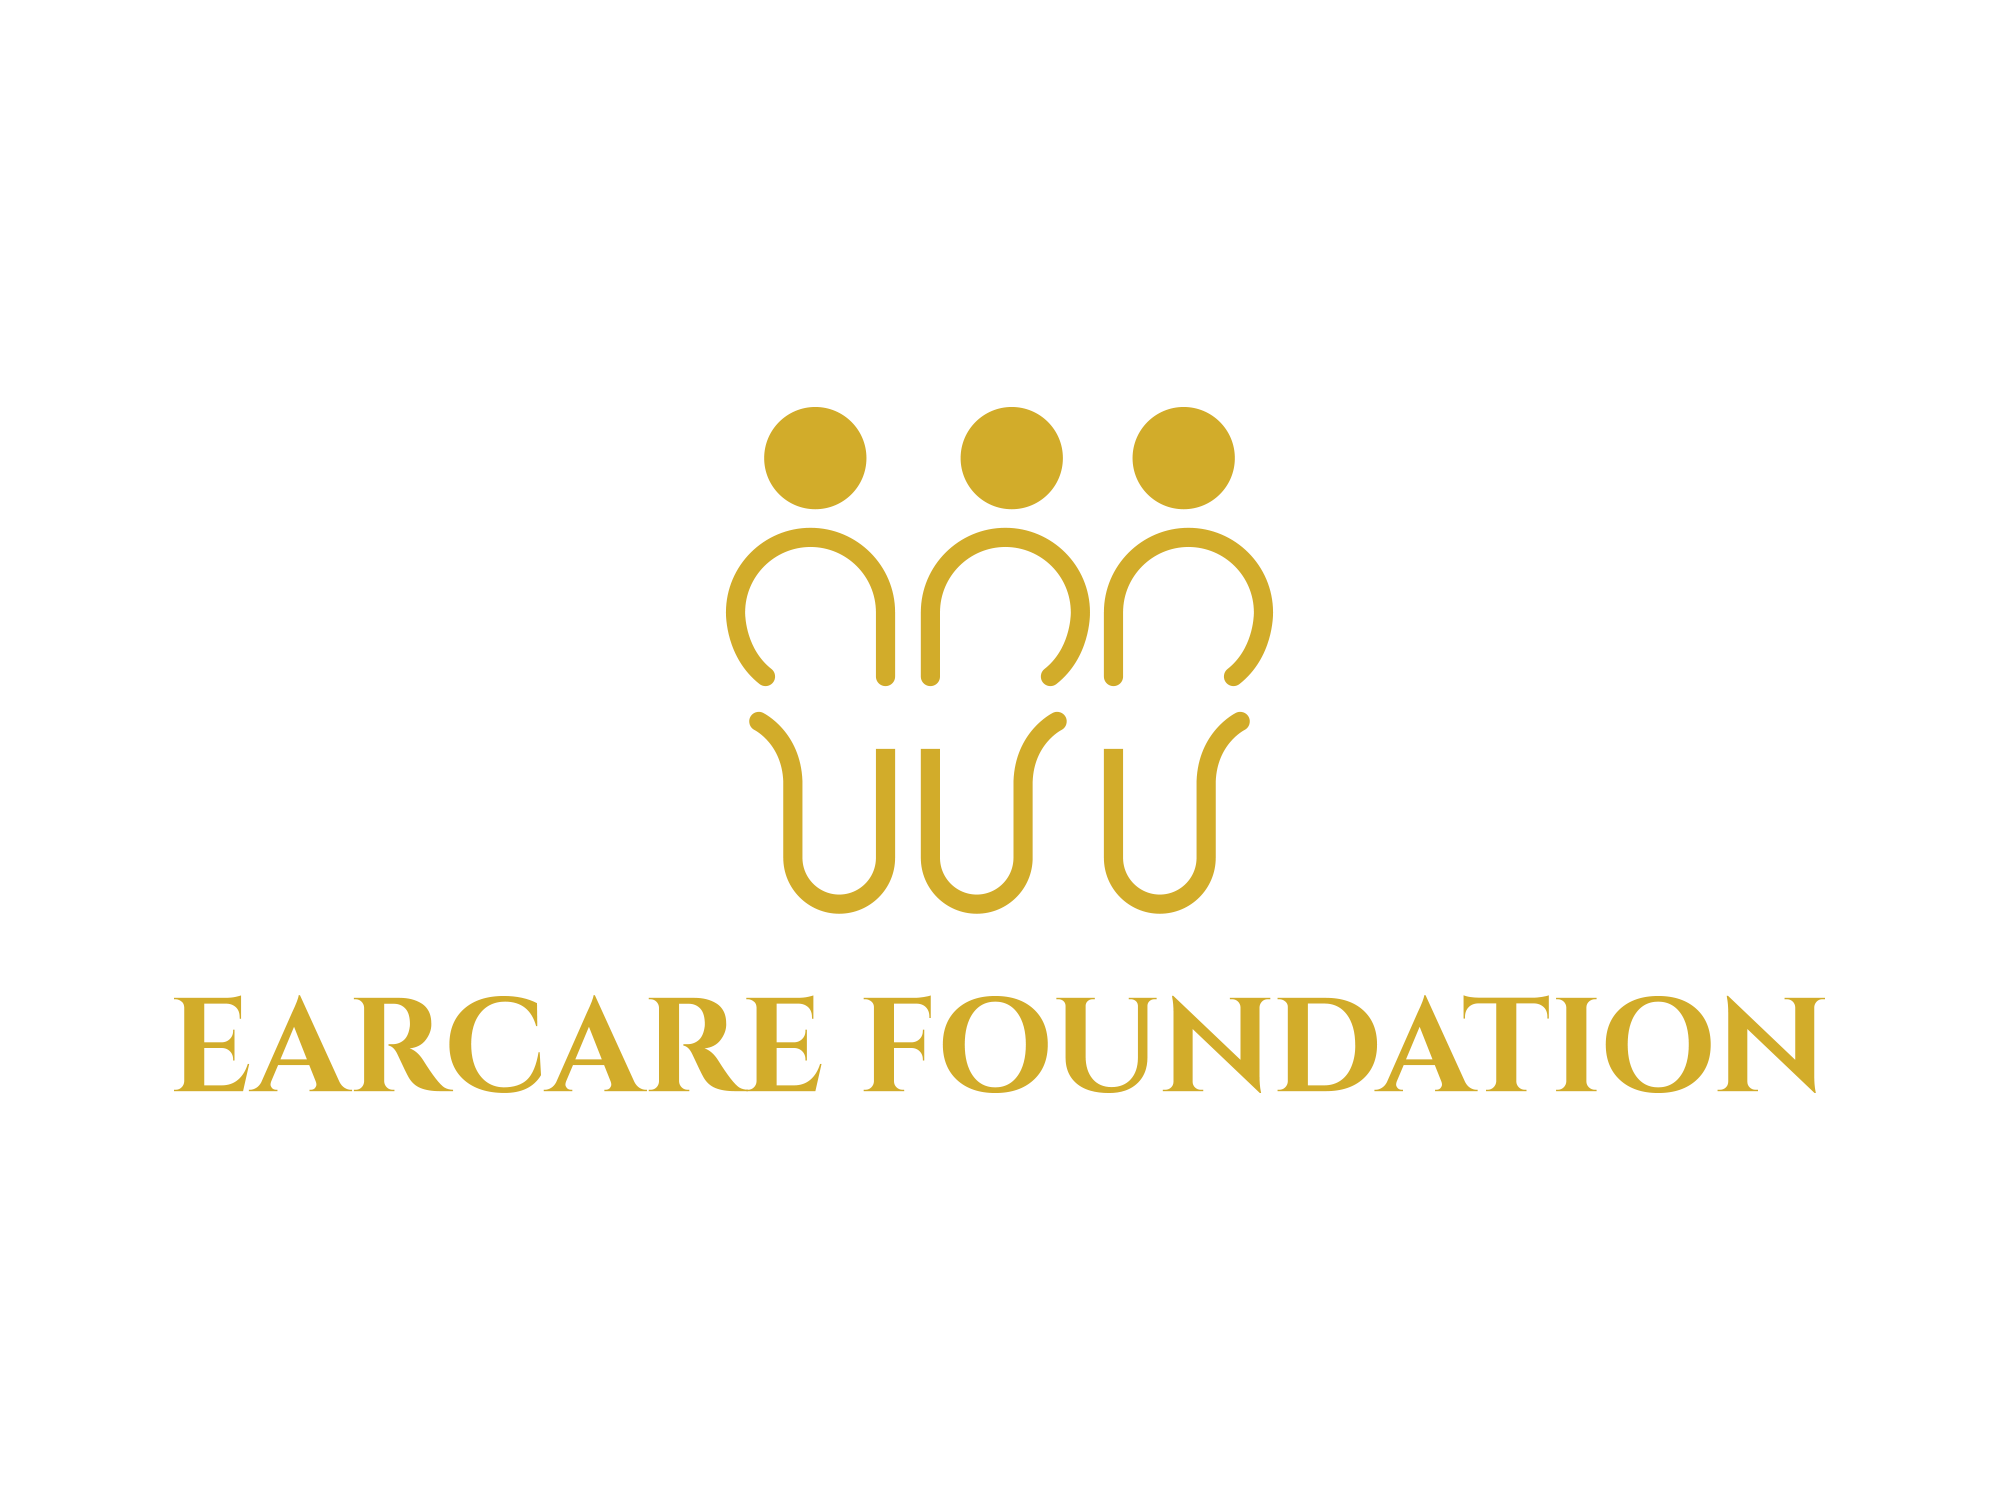 EARCARE FOUNDATION